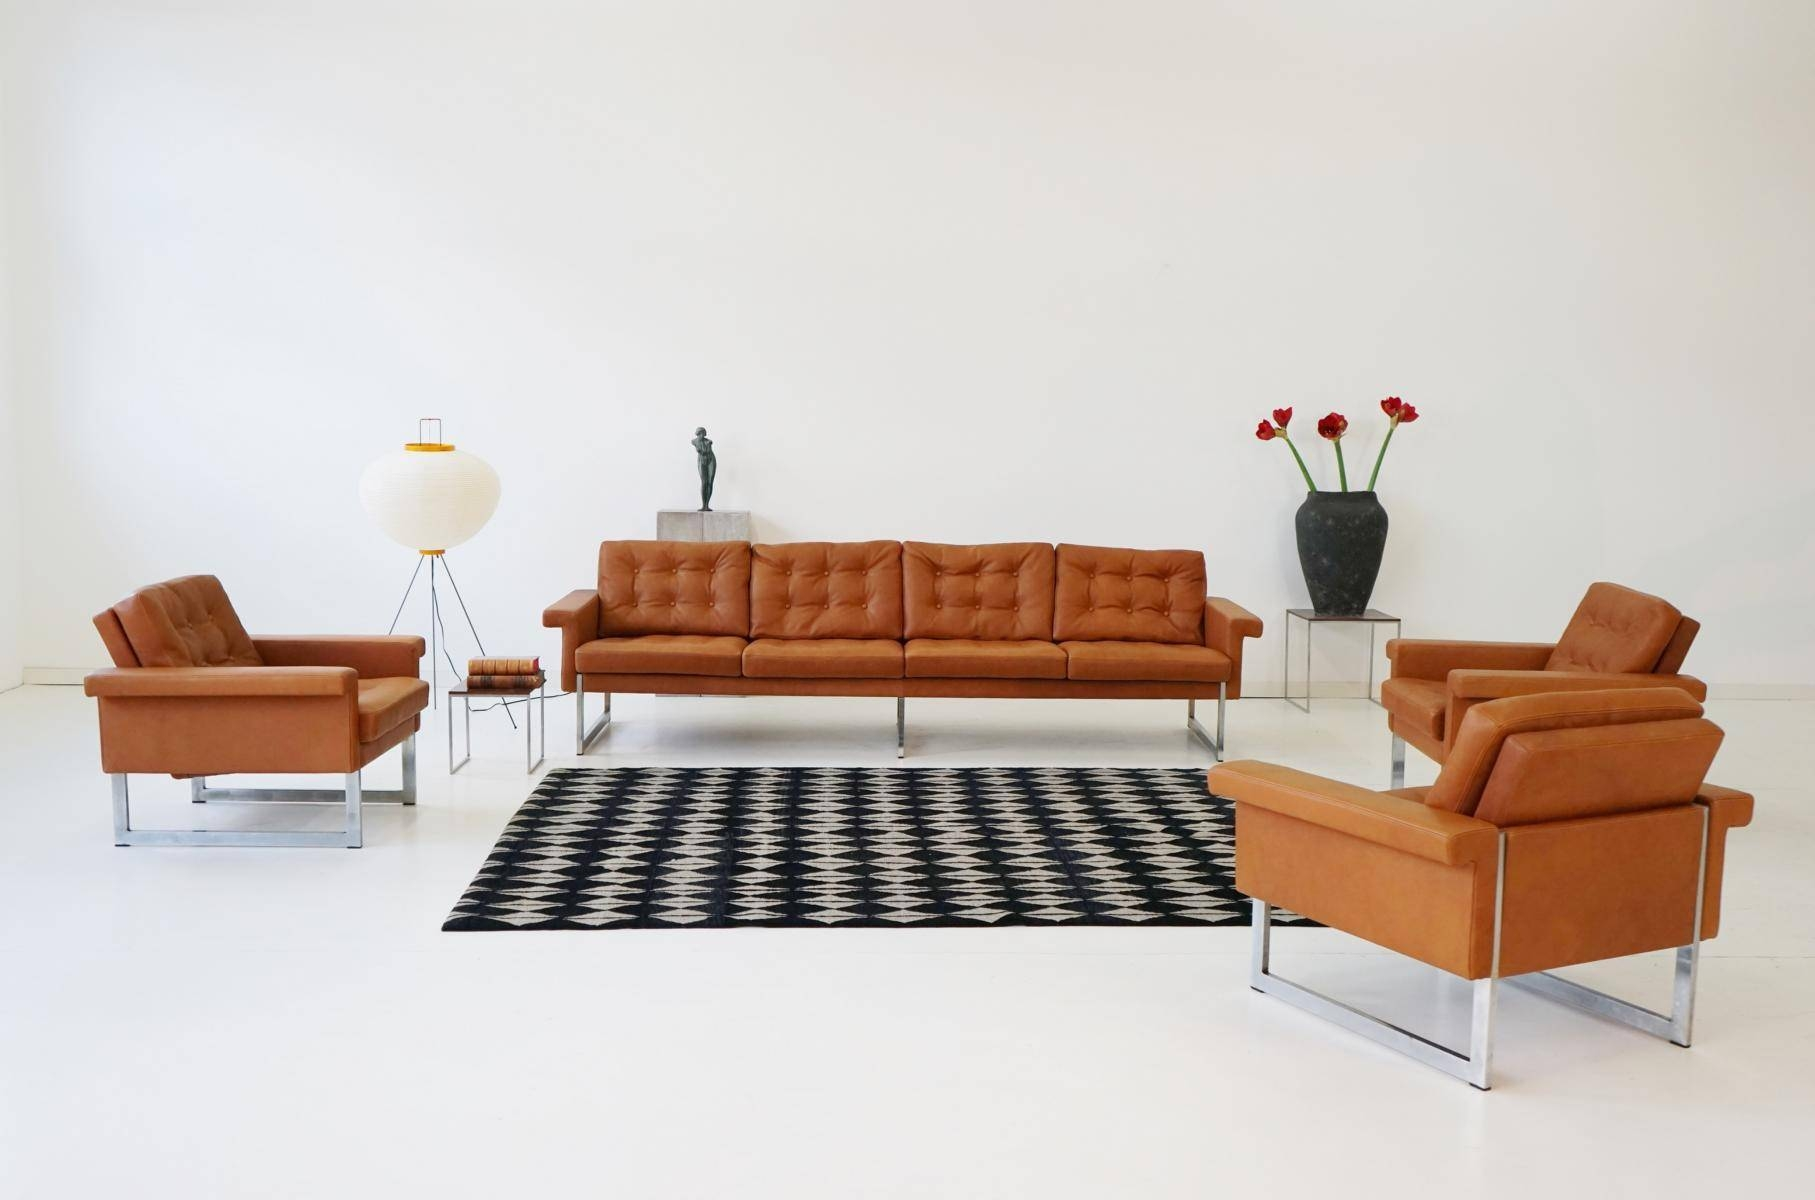 Four-Seater Sofa & Lounge Chairs From Kill International, 1967 For intended for Four Seater Sofas (Image 8 of 30)